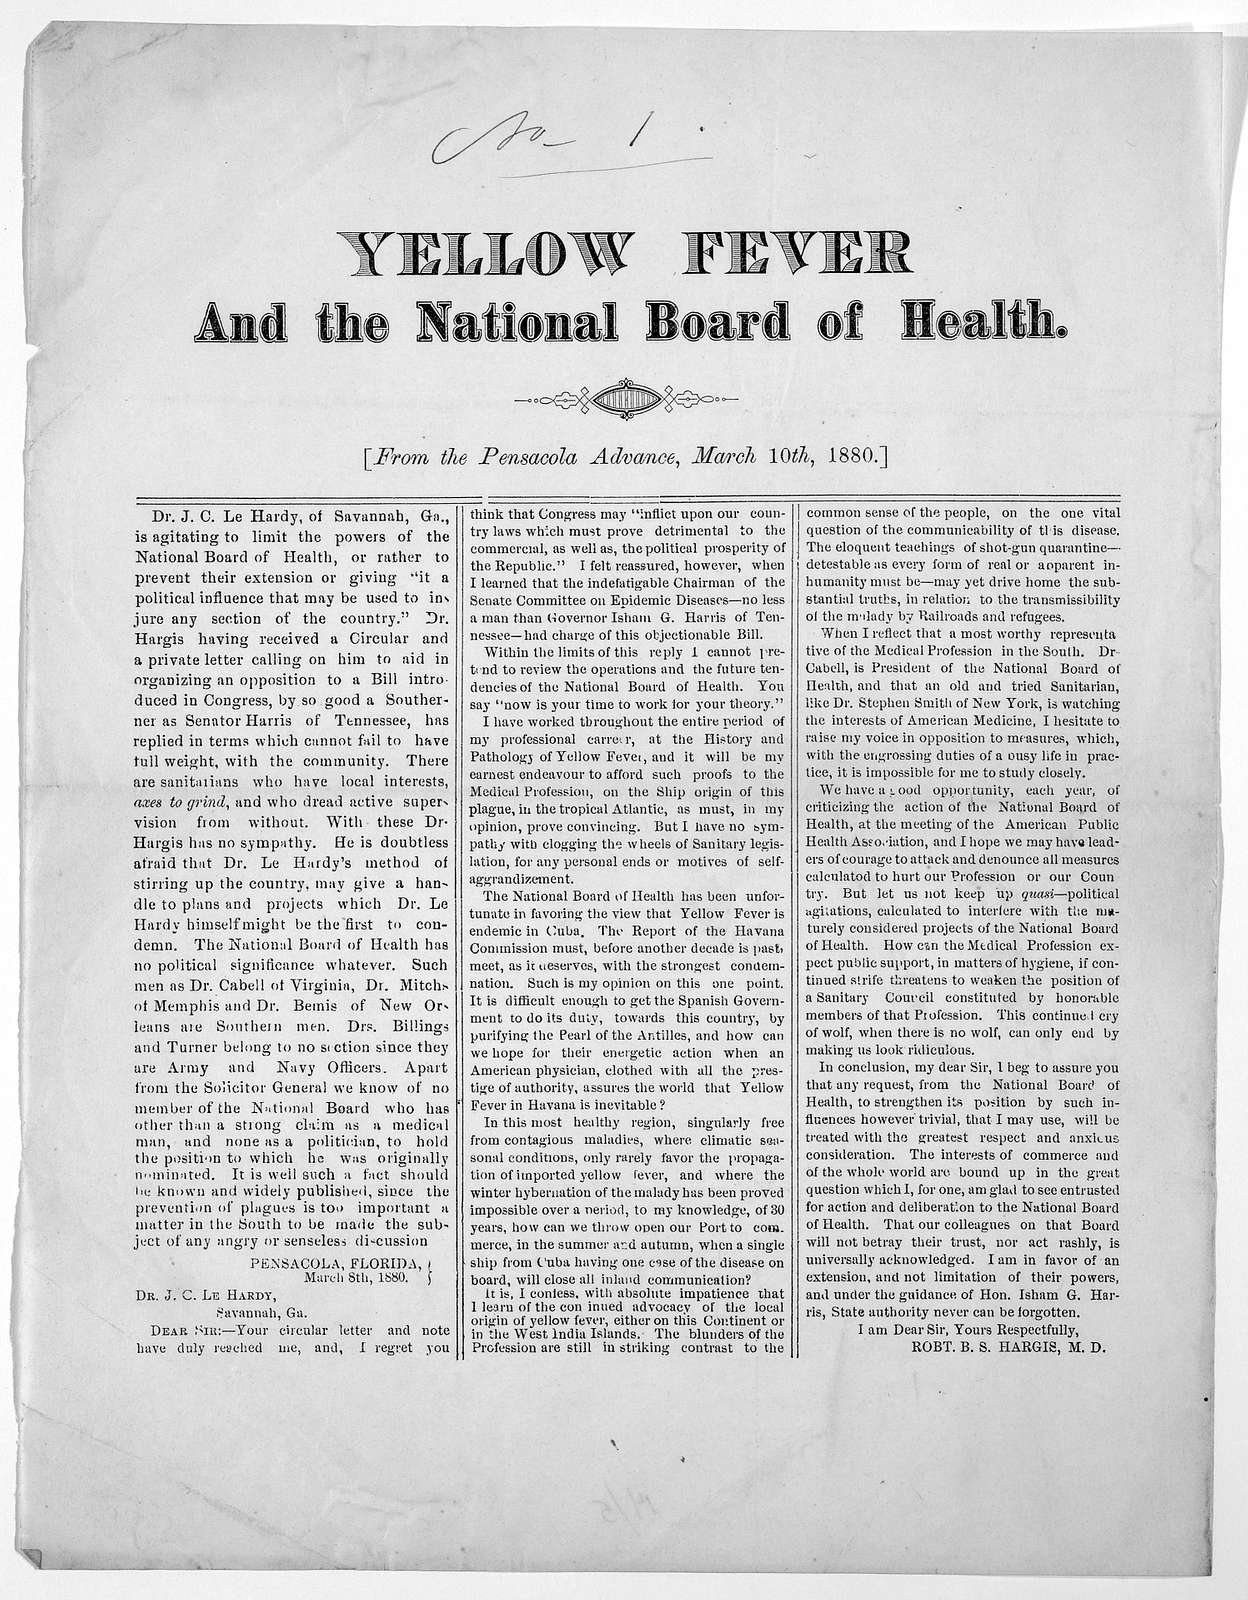 Yellow fever and the national board of health. From the Pensacola Advance, March 10th, 1880. [Pensacola 1880].